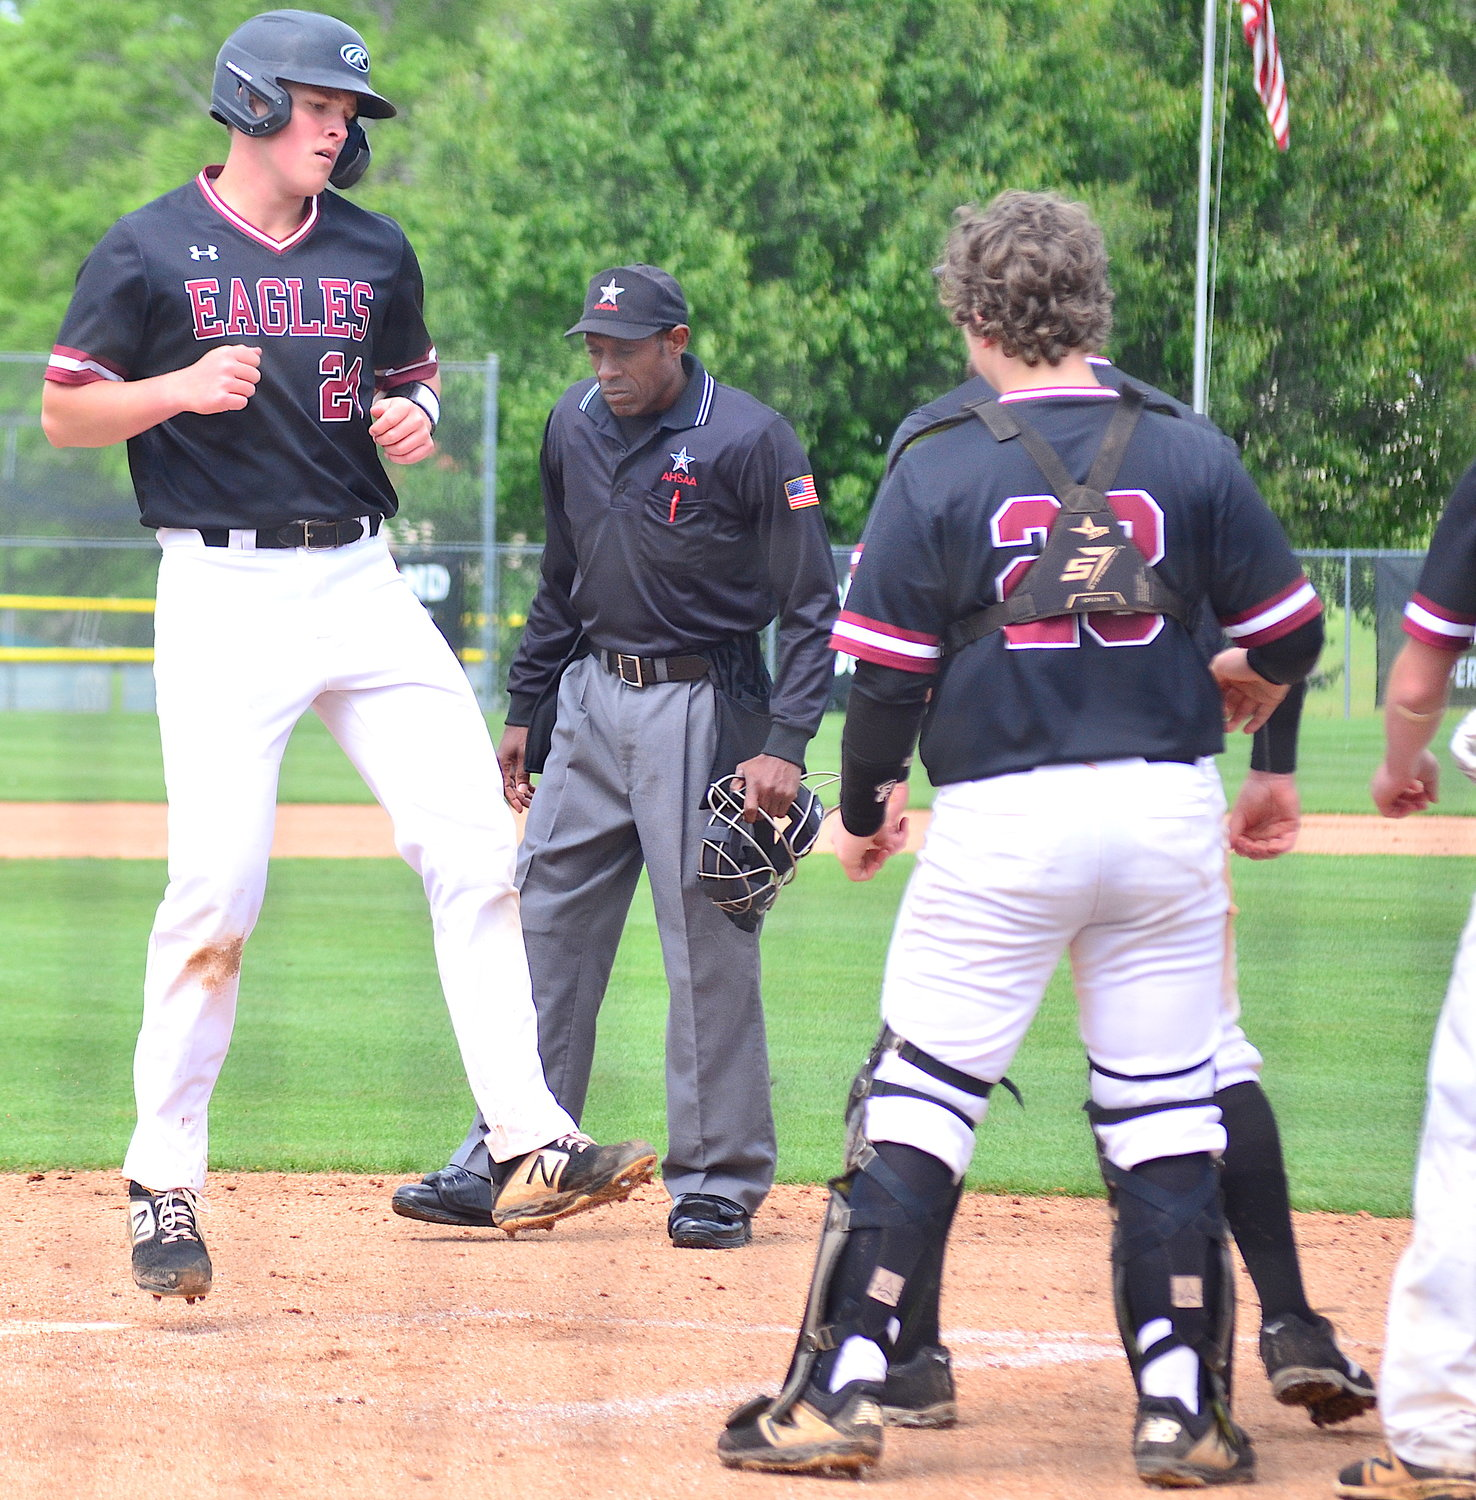 Sumiton Christian's Joe Hicks (24) is welcomed at home plate by teammates after belting a home run in the Eagles' first-round playoff series against Ohatchee.